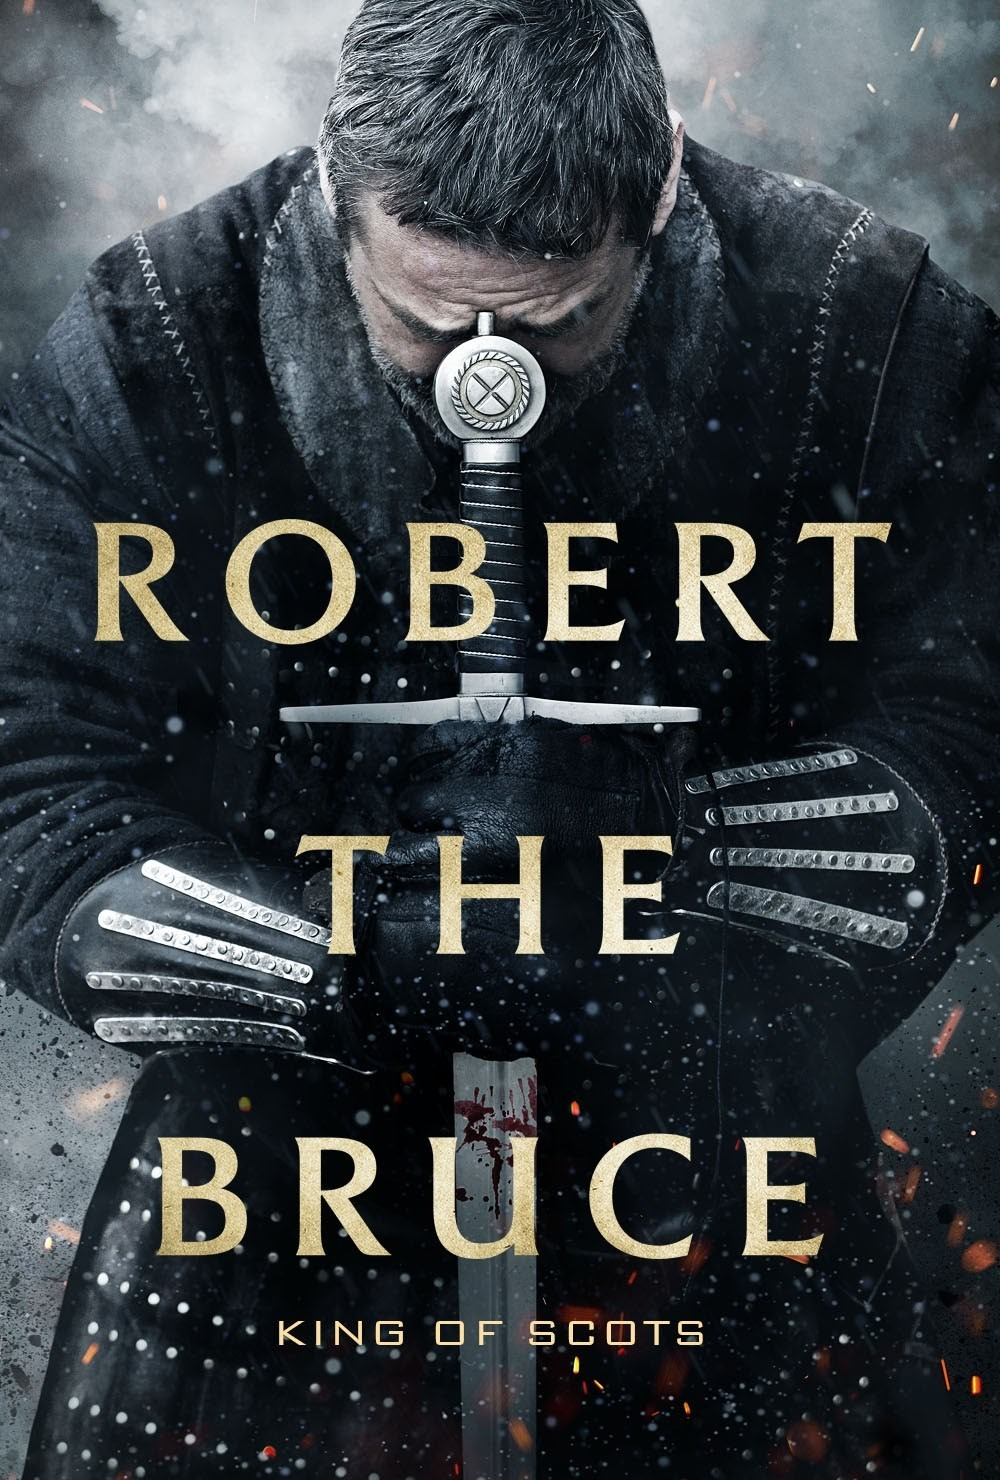 Robert the Bruce Premiere Event